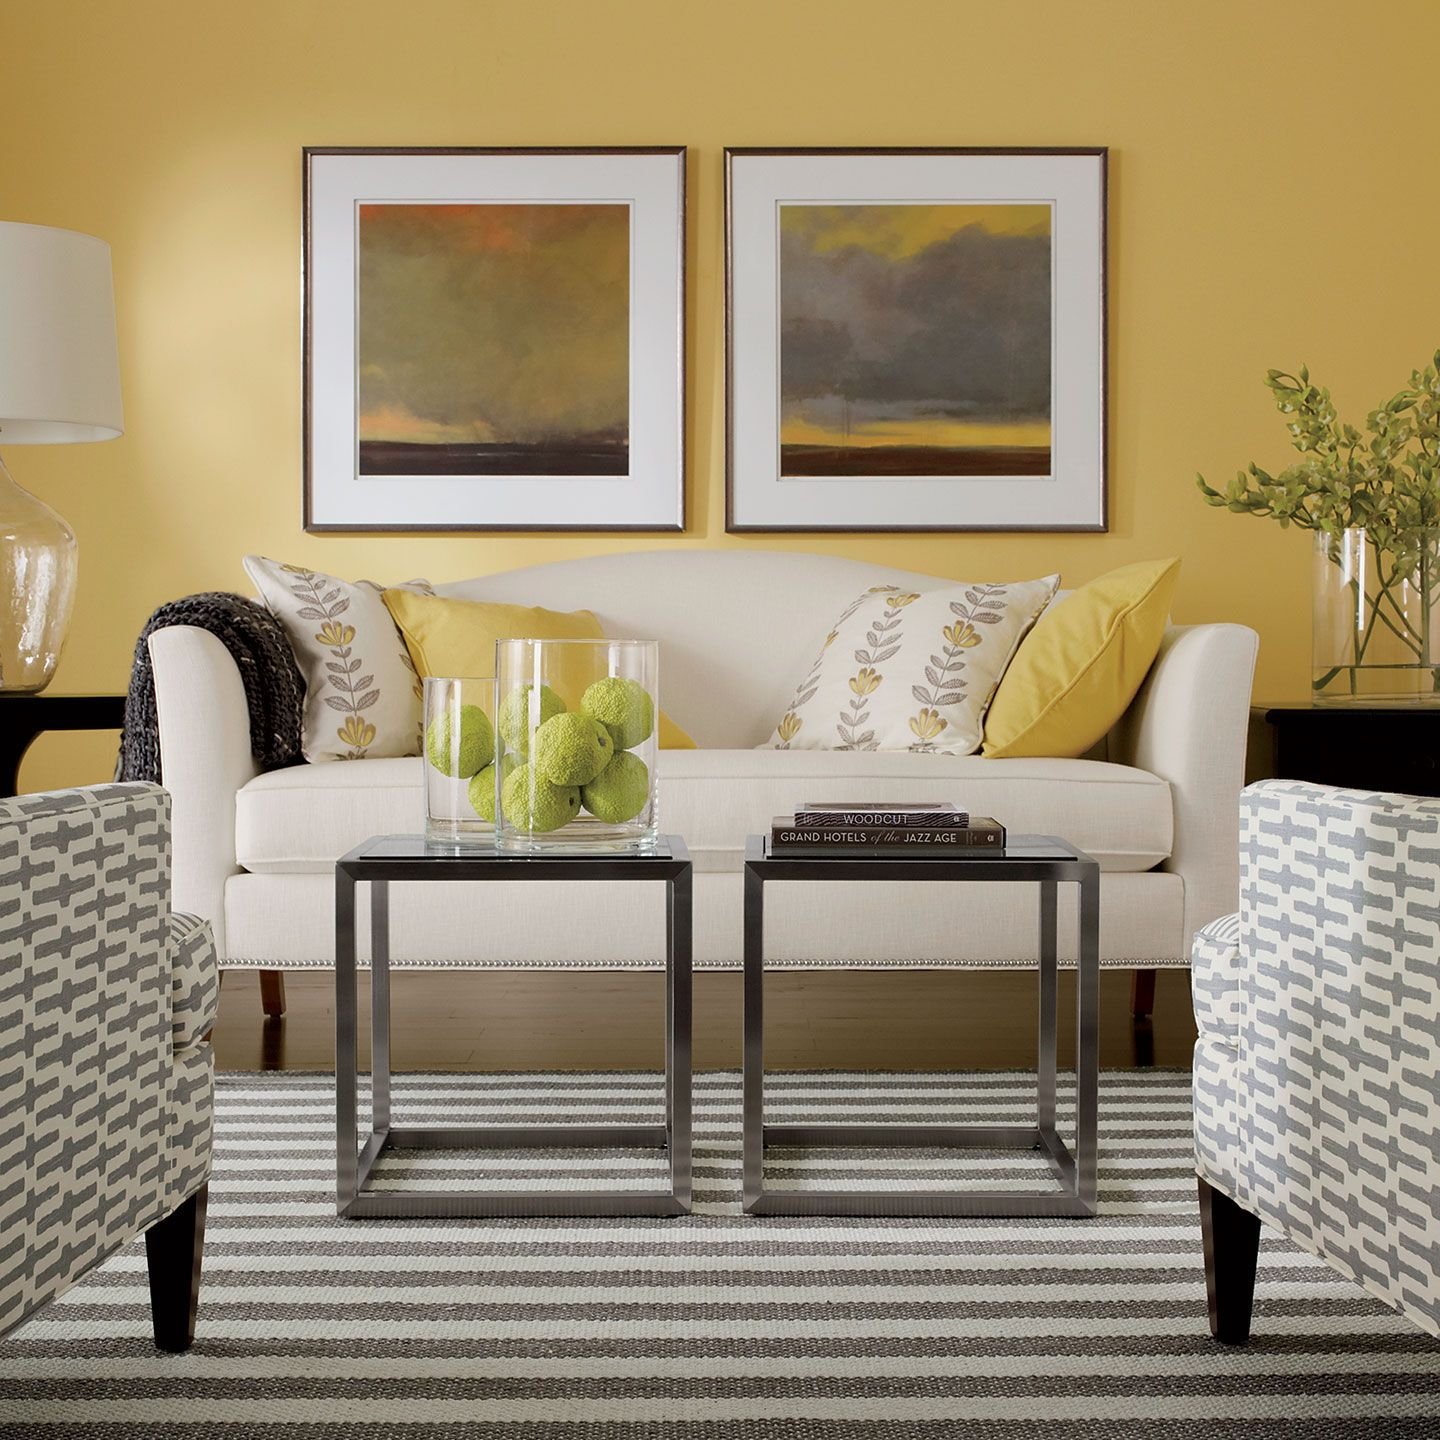 Ethan Allen Jordan Bunching Coffee Table: Hartwell Sofas And Loveseat